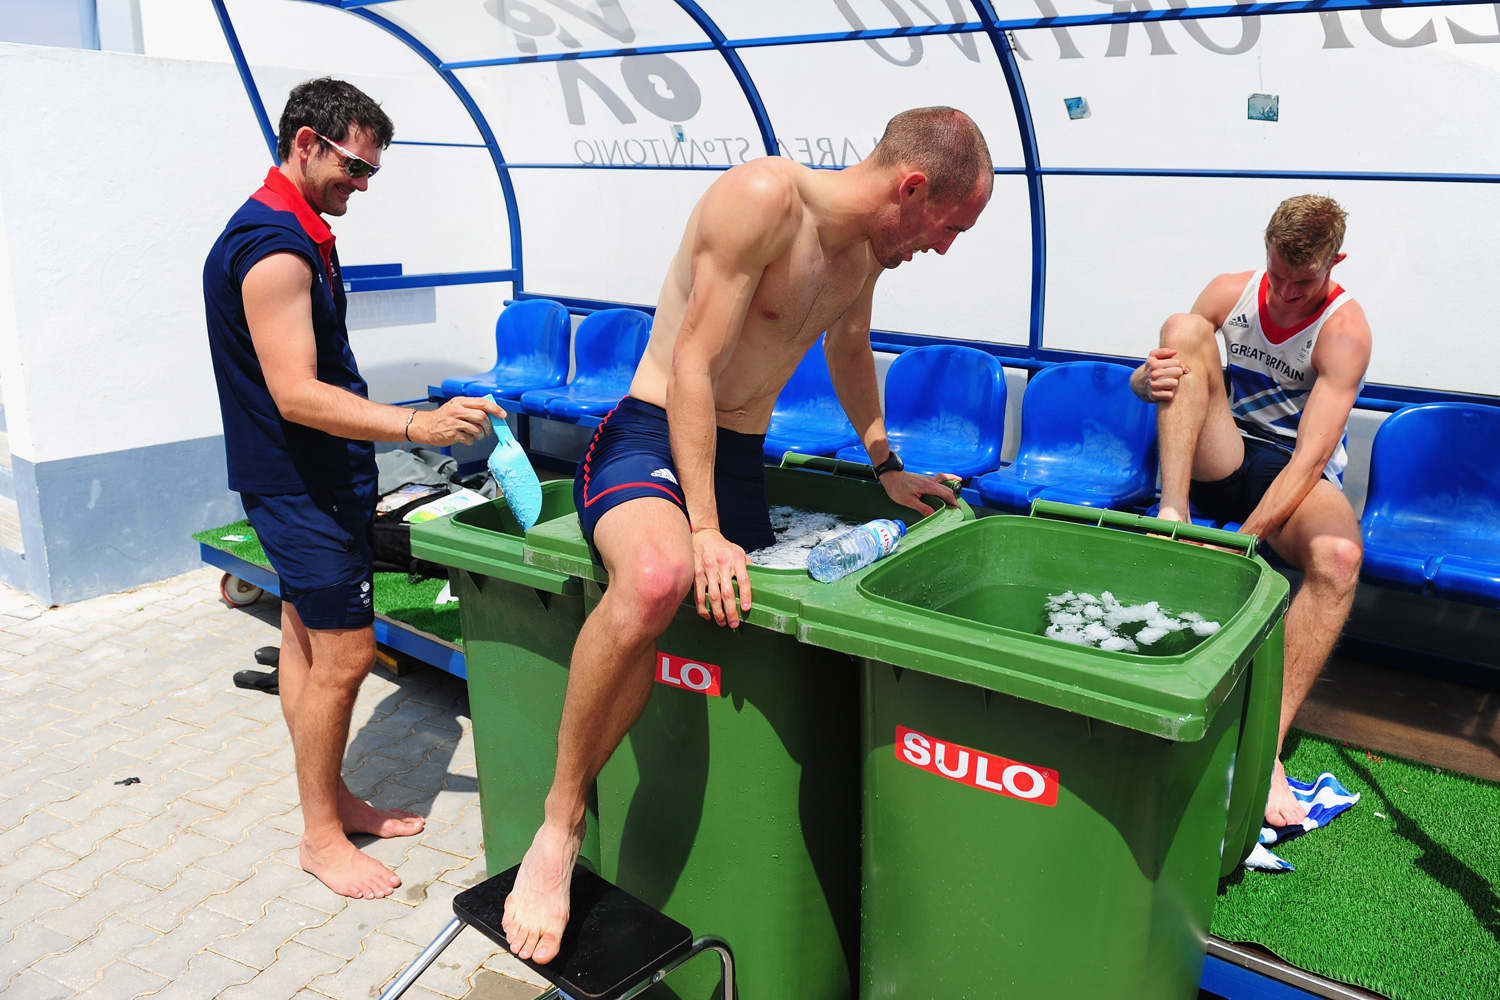 Champion hurdler Dai Greene (L) and Jack Green take an ice bath after their training session in Monte Gordo, Portugal.